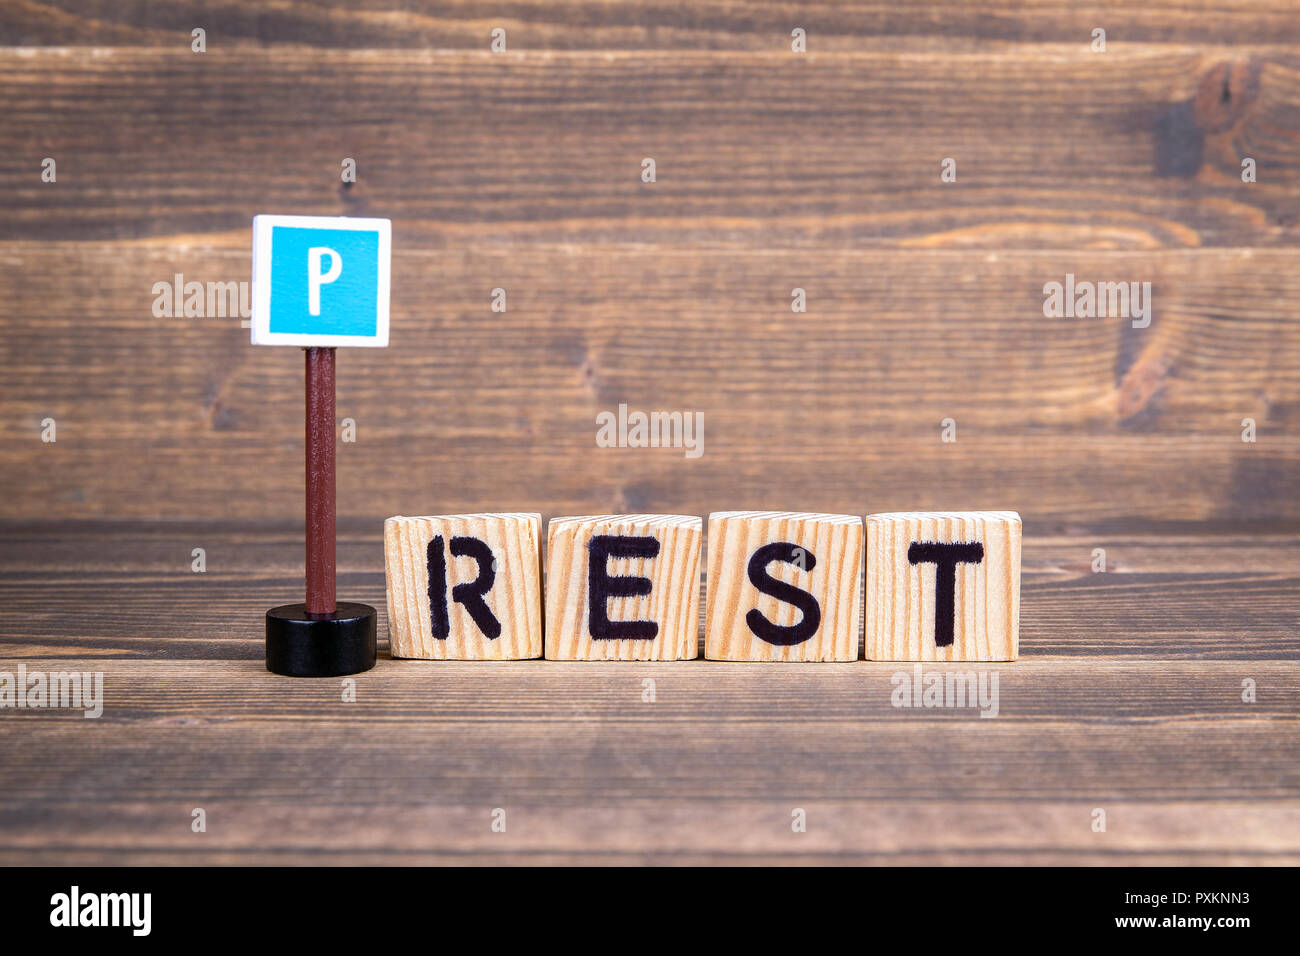 Rest name from wooden letters with road sign on wooden background - Stock Image